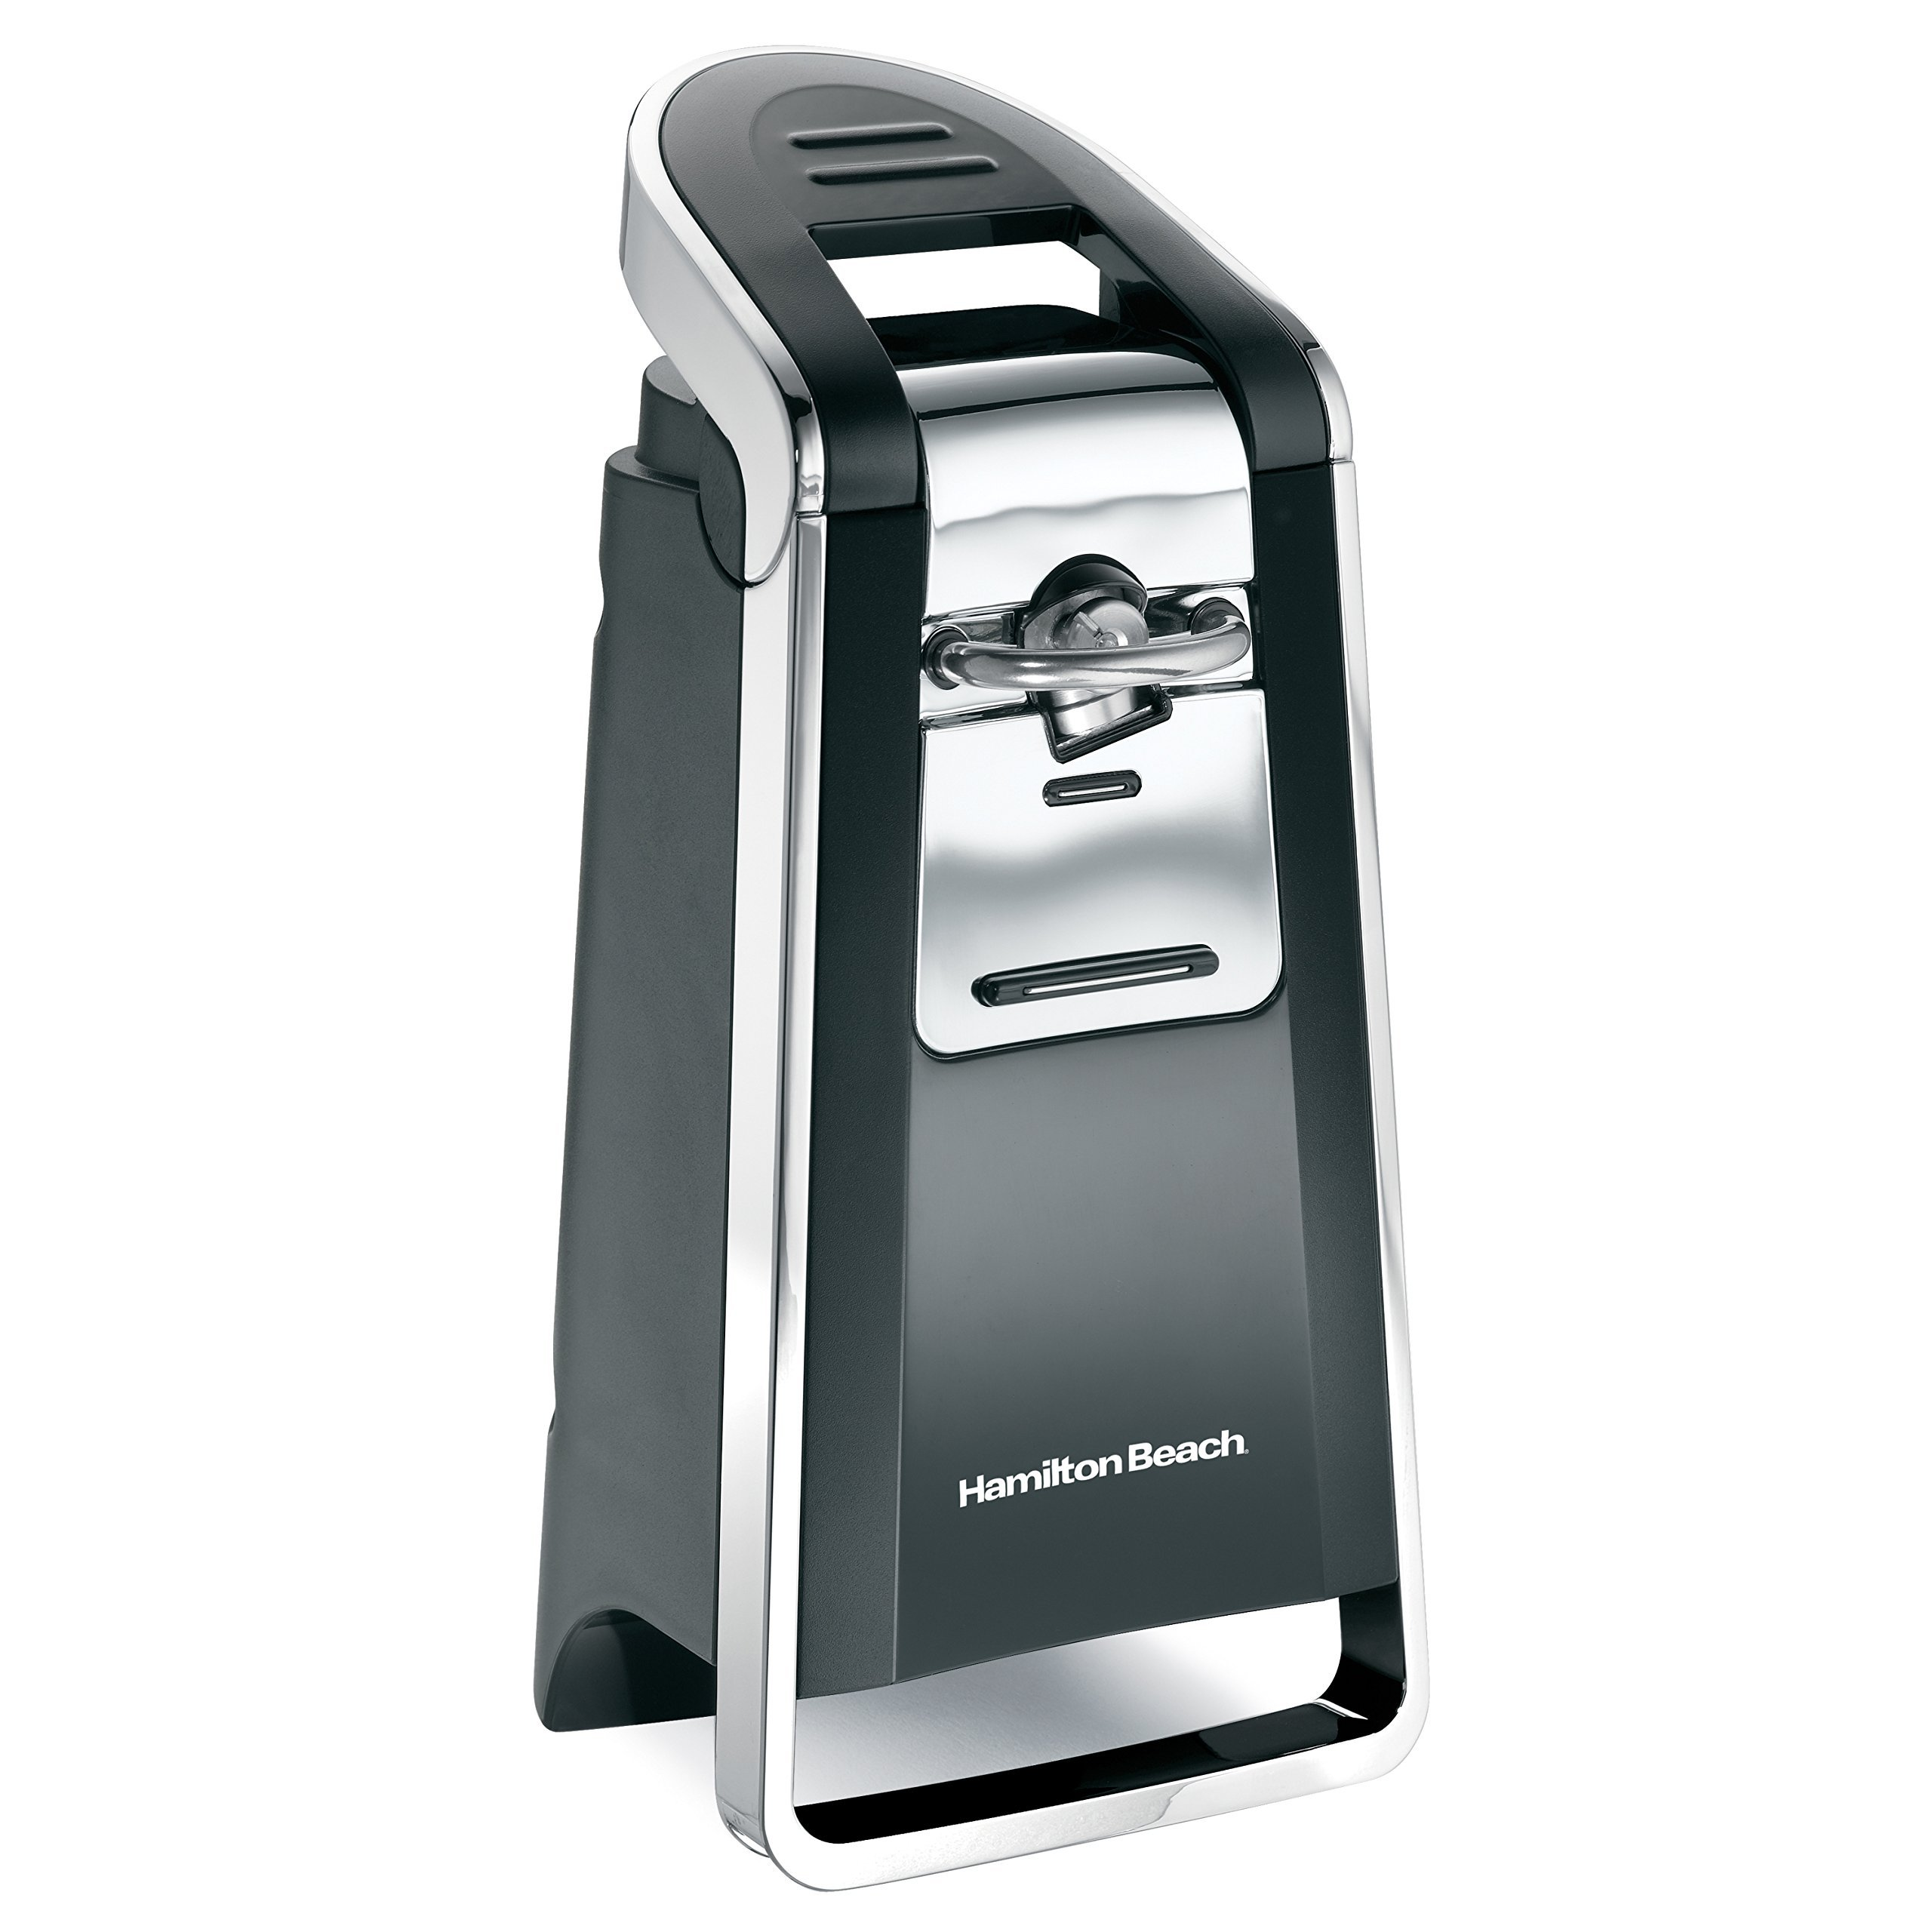 Hamilton Beach Smooth Touch Electric Kitchen Countertop Can Opener | 76606ZA by Hamilton Beach